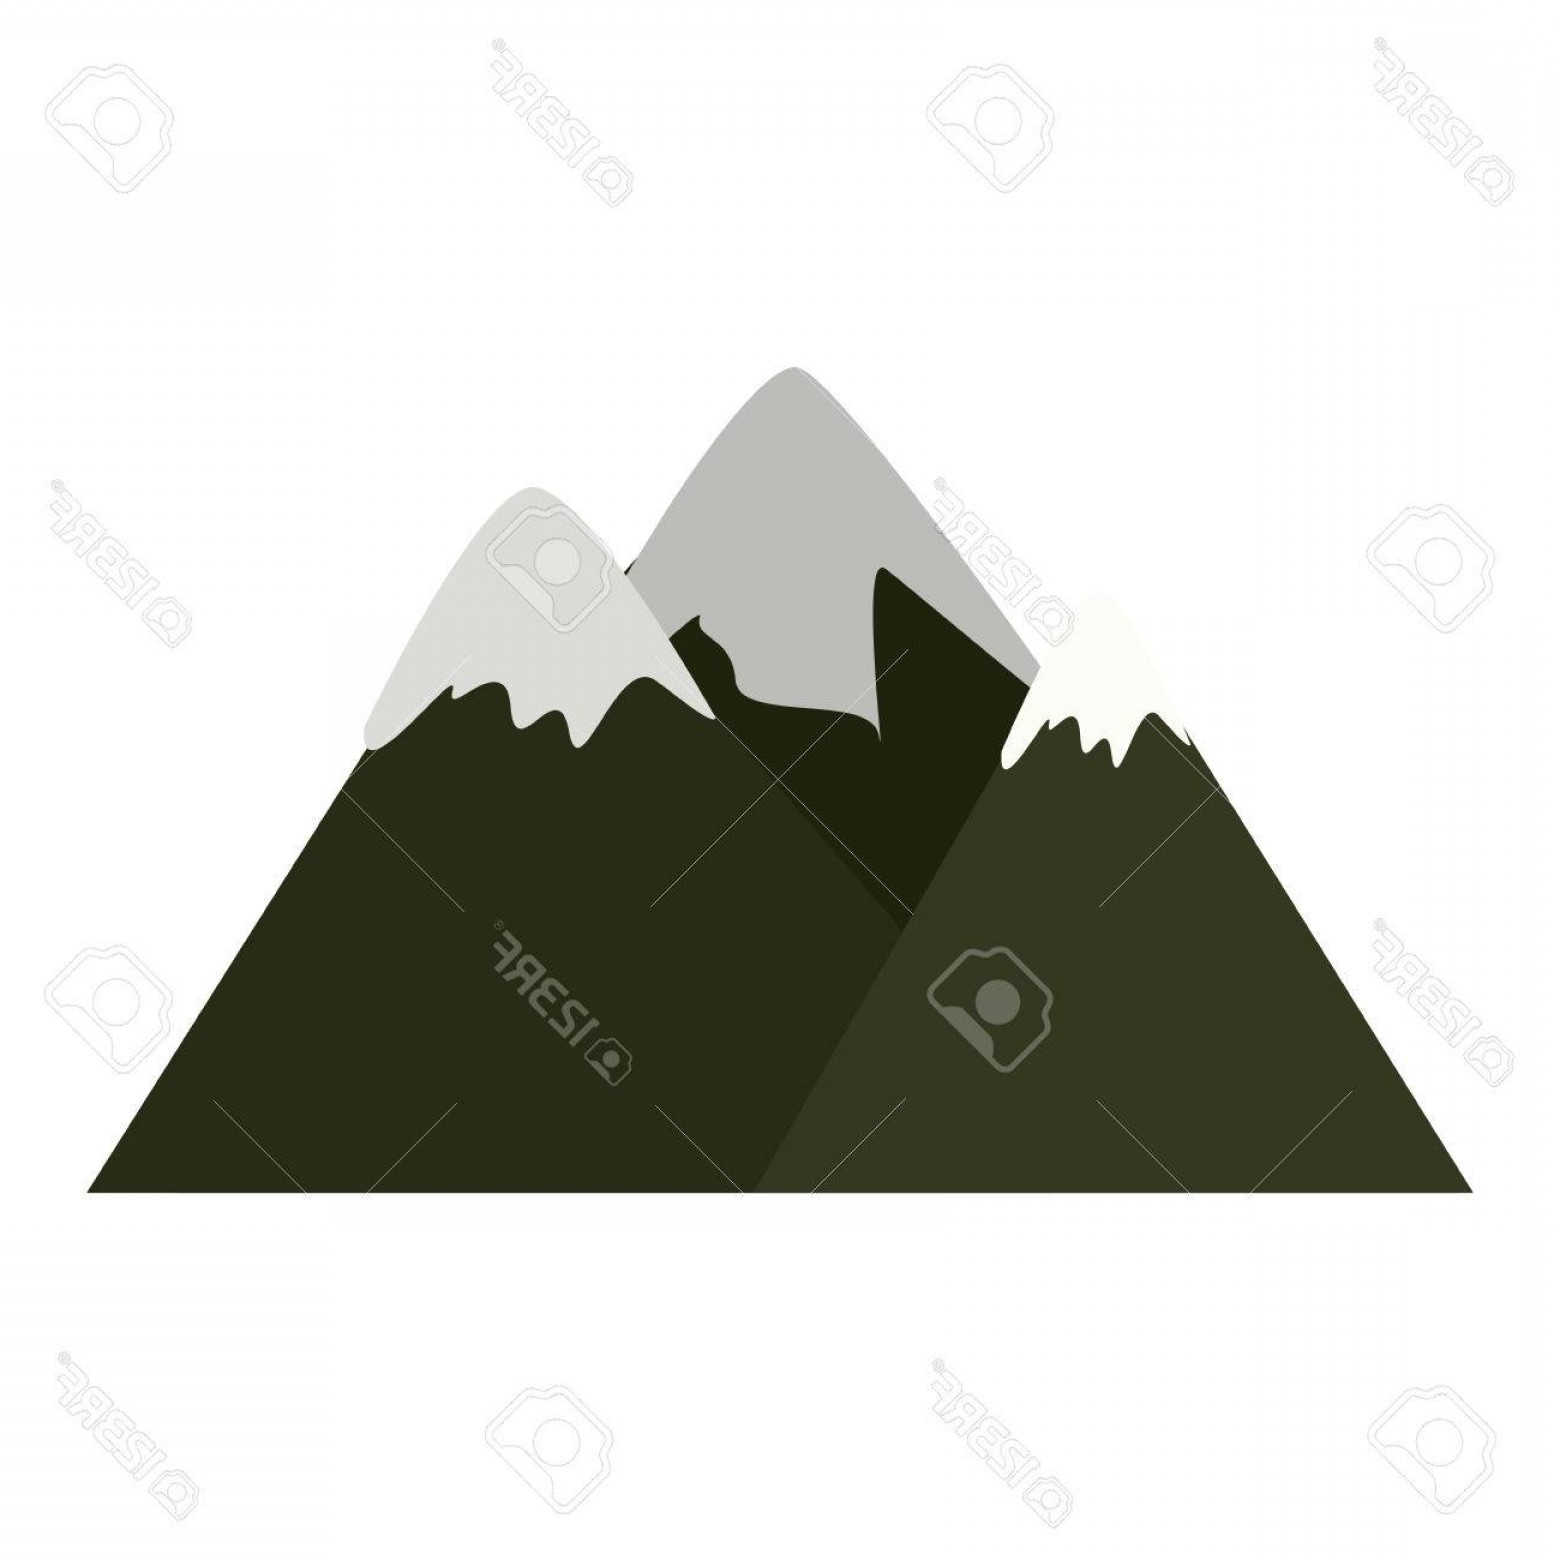 Snowy Mountain Vector Graphics: Photostock Vector Colorful Lanscape With Snowy Mountains Vector Illustration